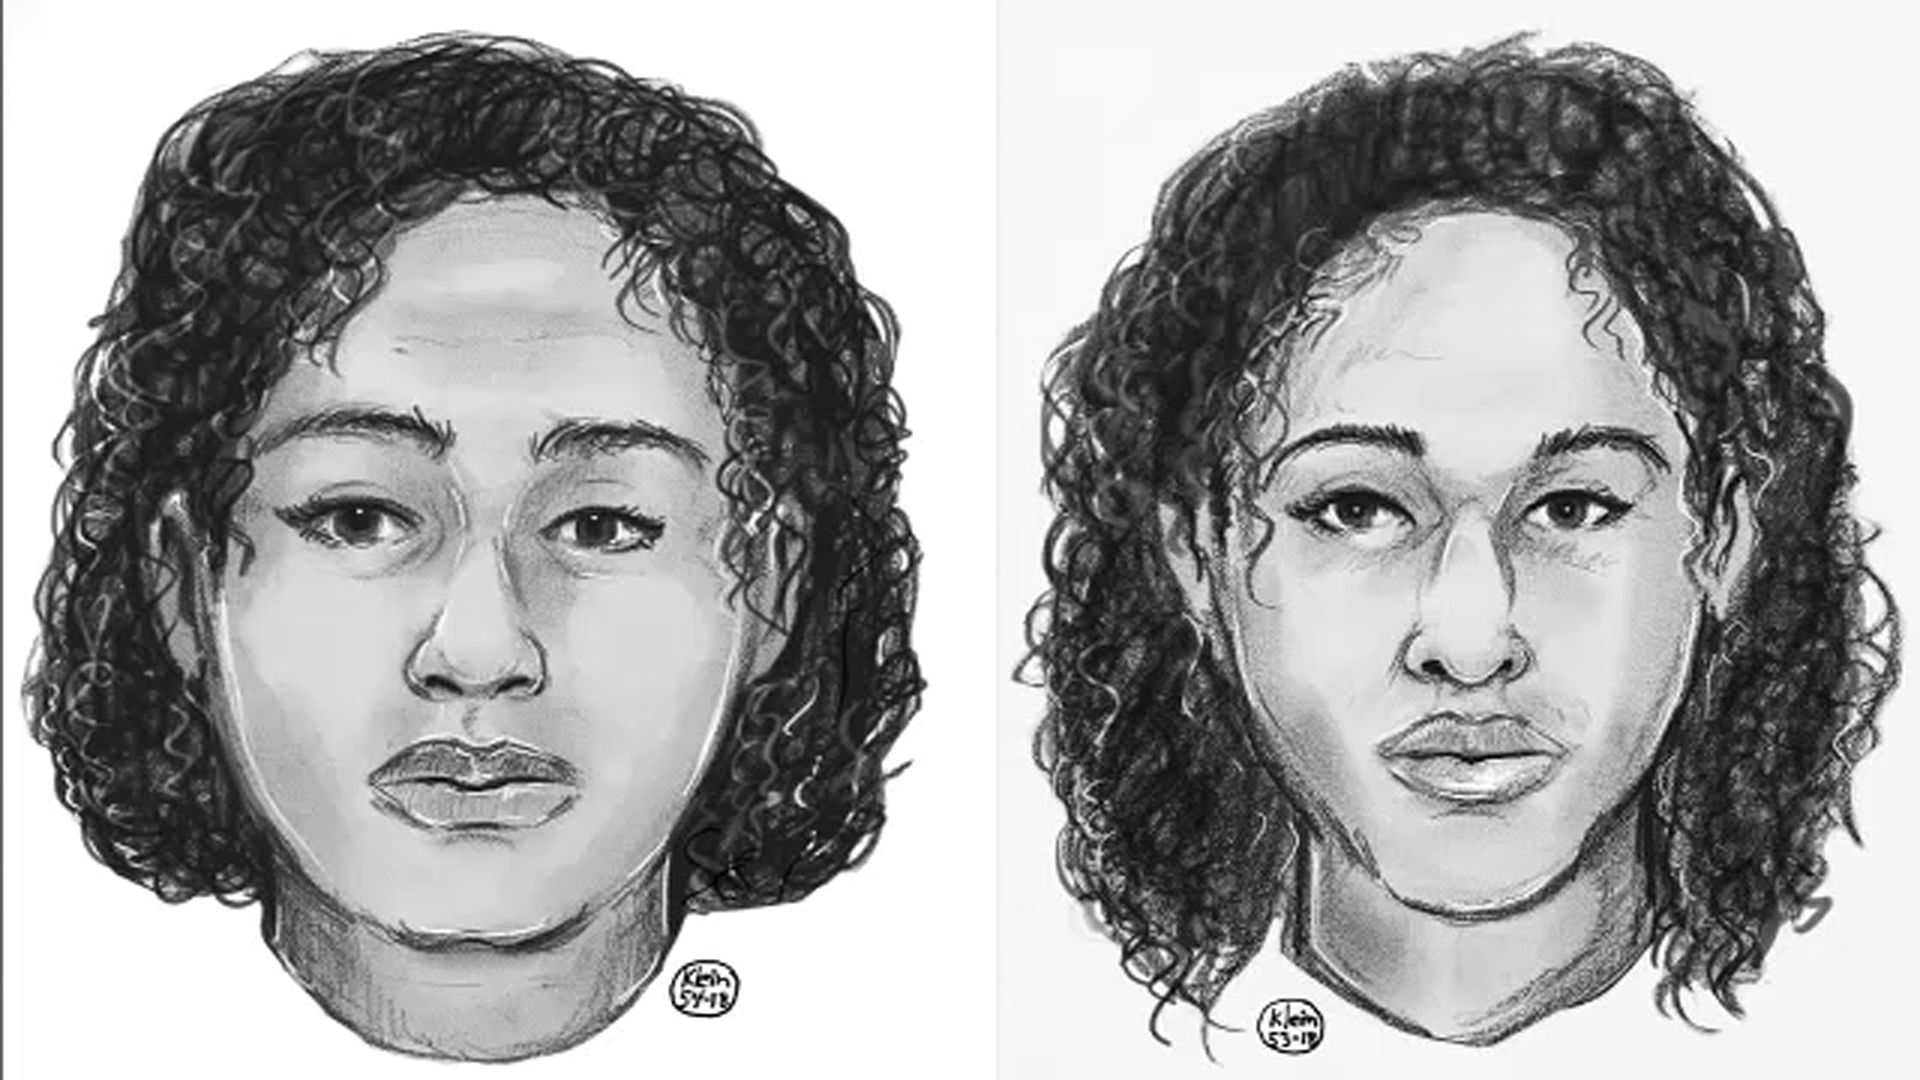 Police have identified the two women whose duct-taped bodies were found washed up from the Hudson River as sisters